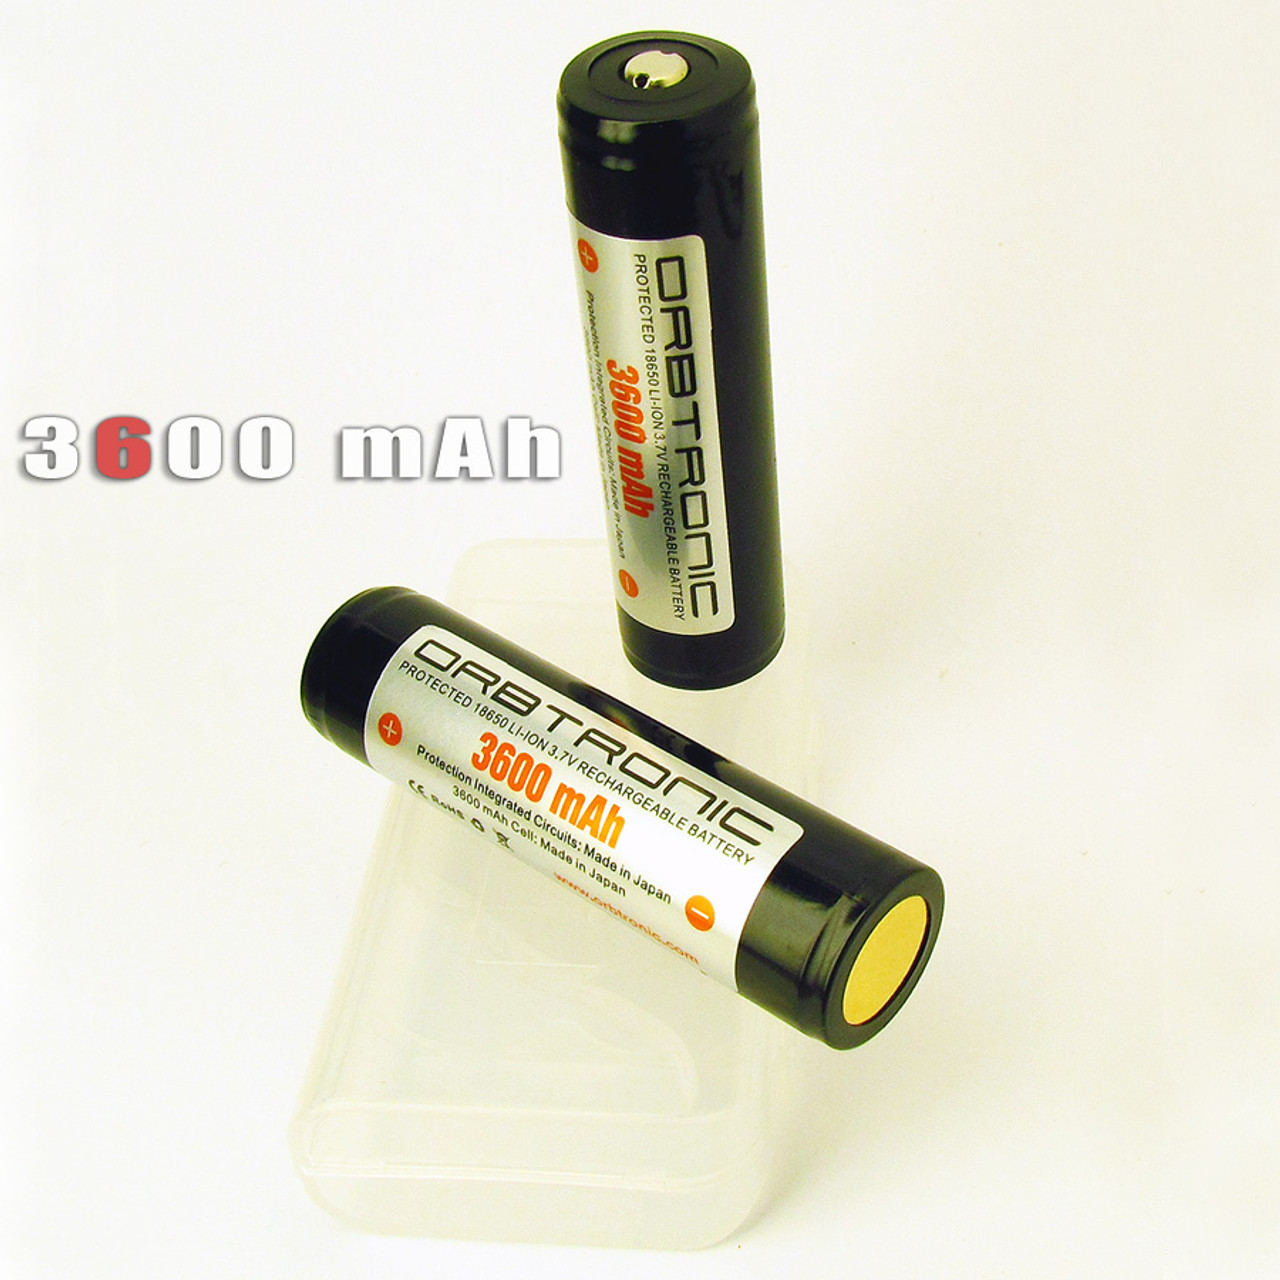 3600mAh 18650 Li-ion Orbtronic (Panasonic inside) 3 7V Rechargeable Battery  Cell - For High Performance Flashlights - Dual Protection - Battery Holder